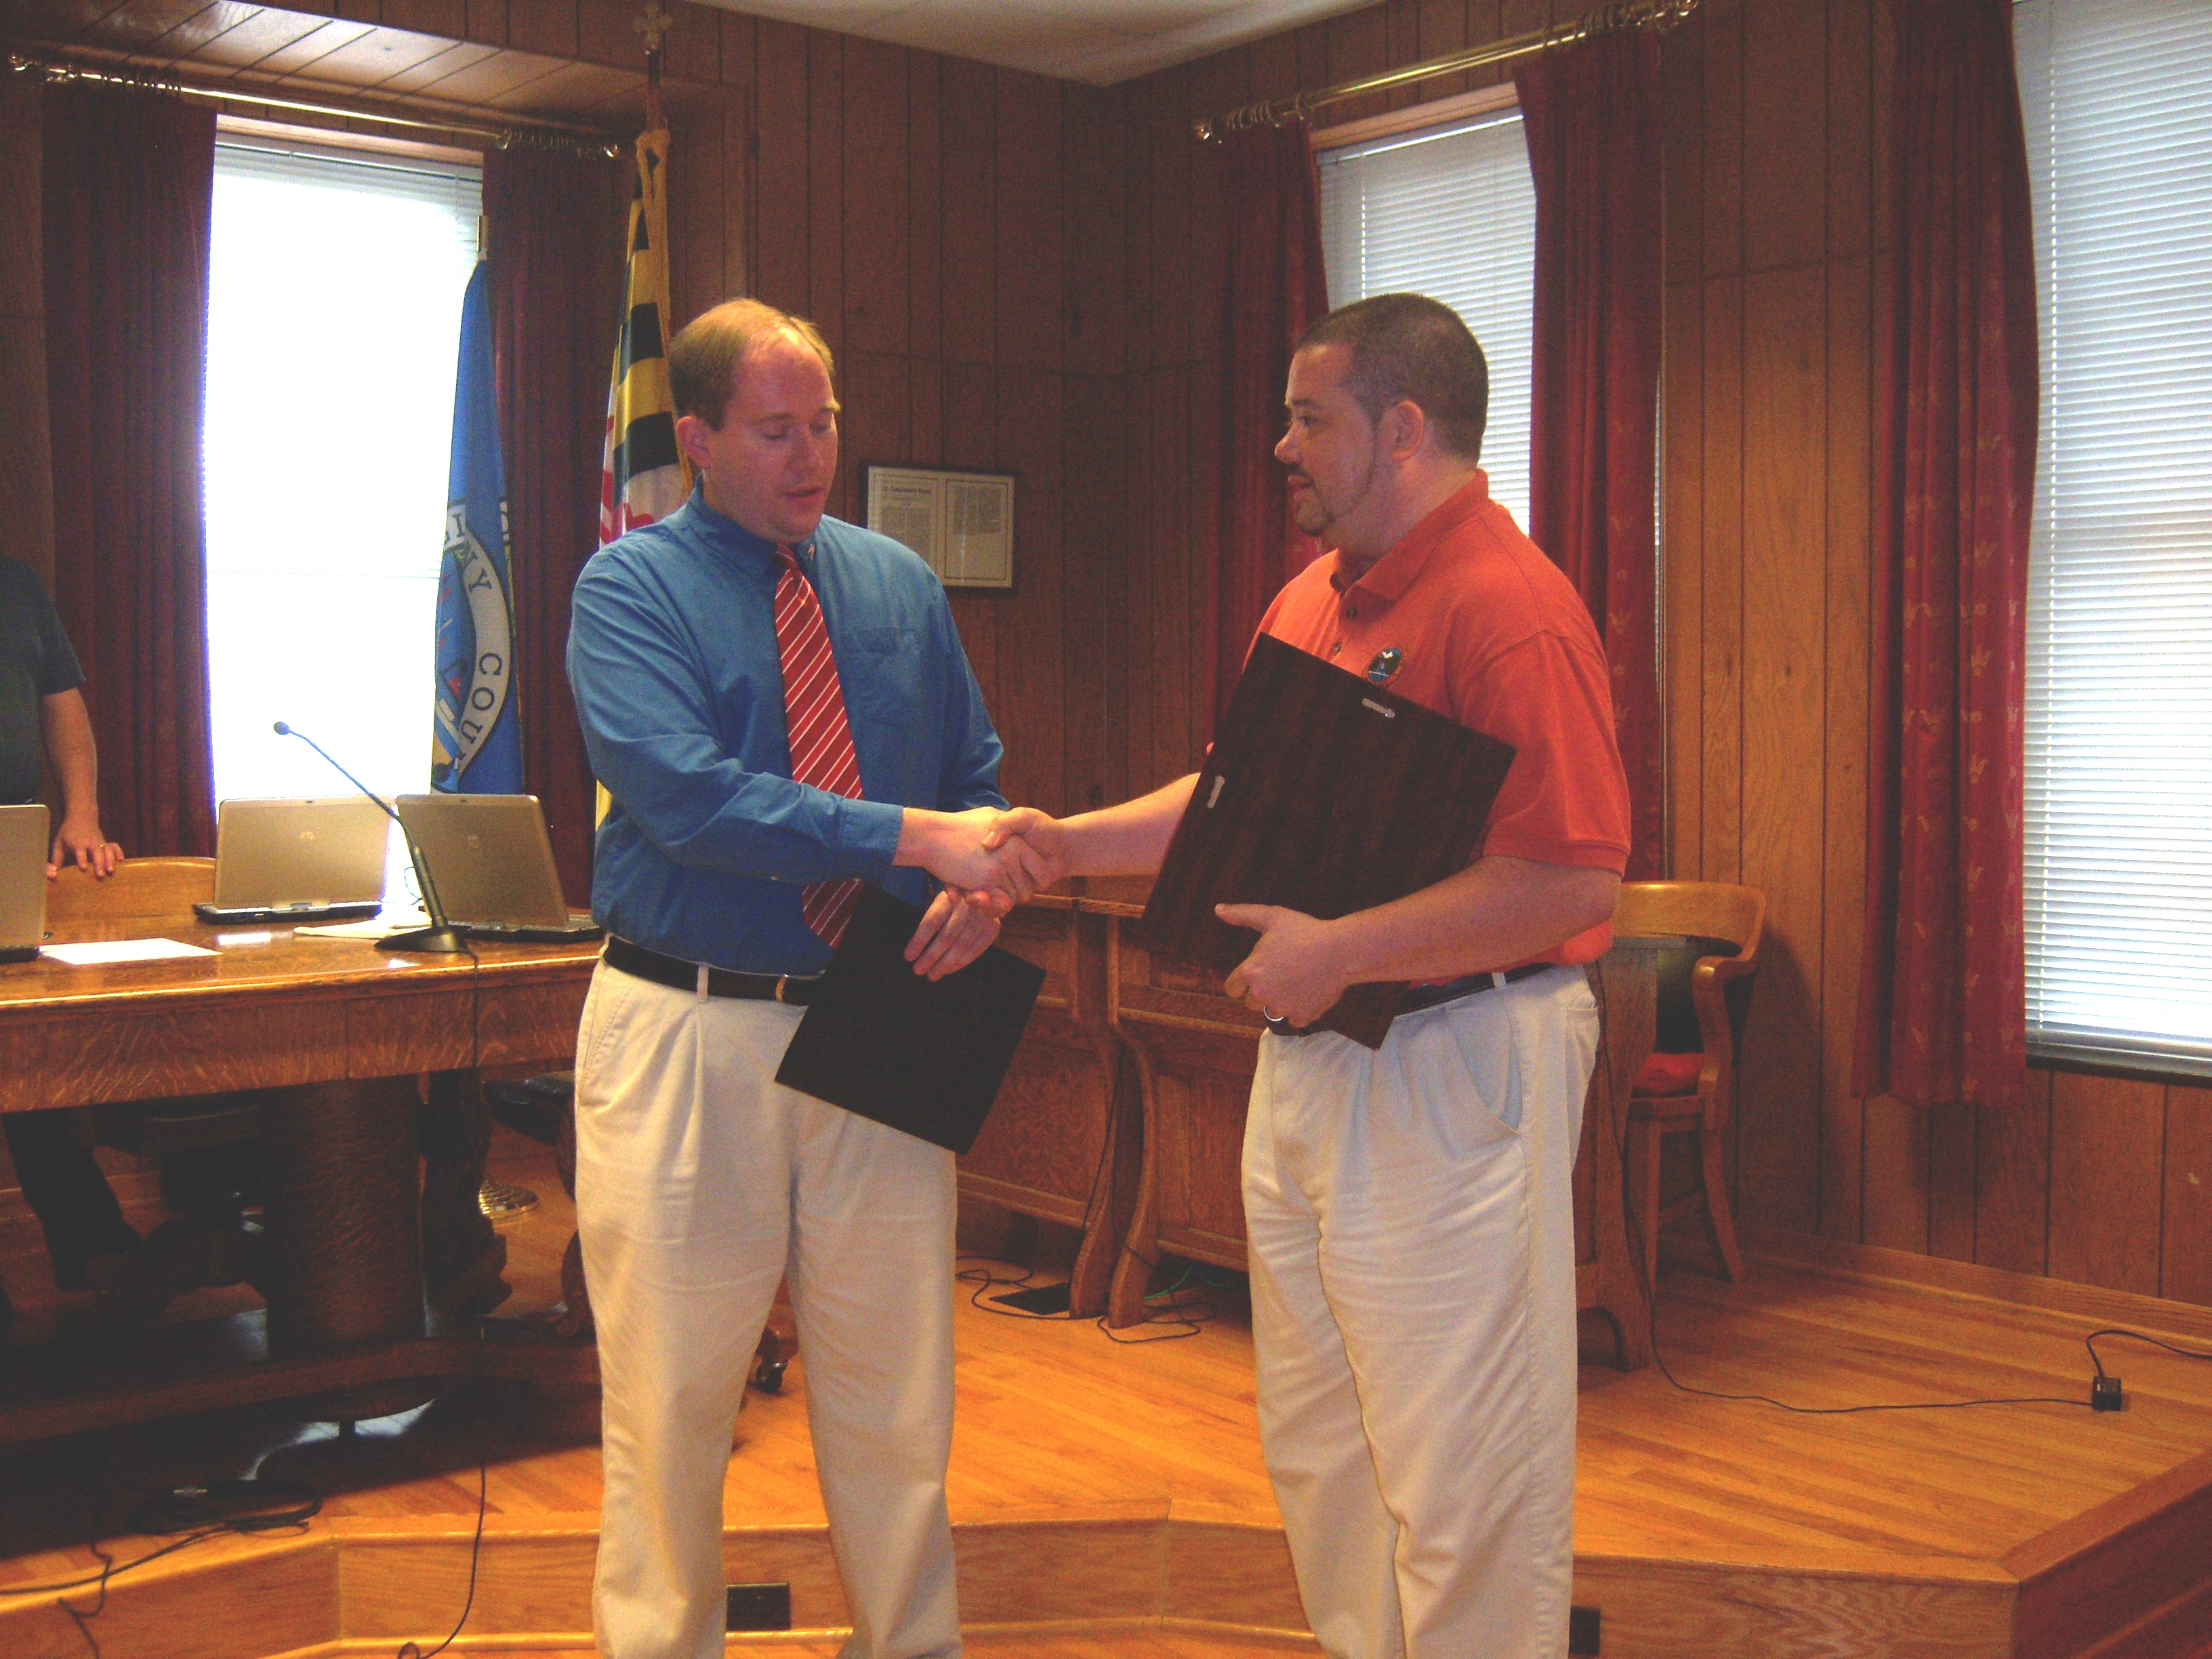 Technology Specialist Jon Daddysman Receives a Certificate of Recognition